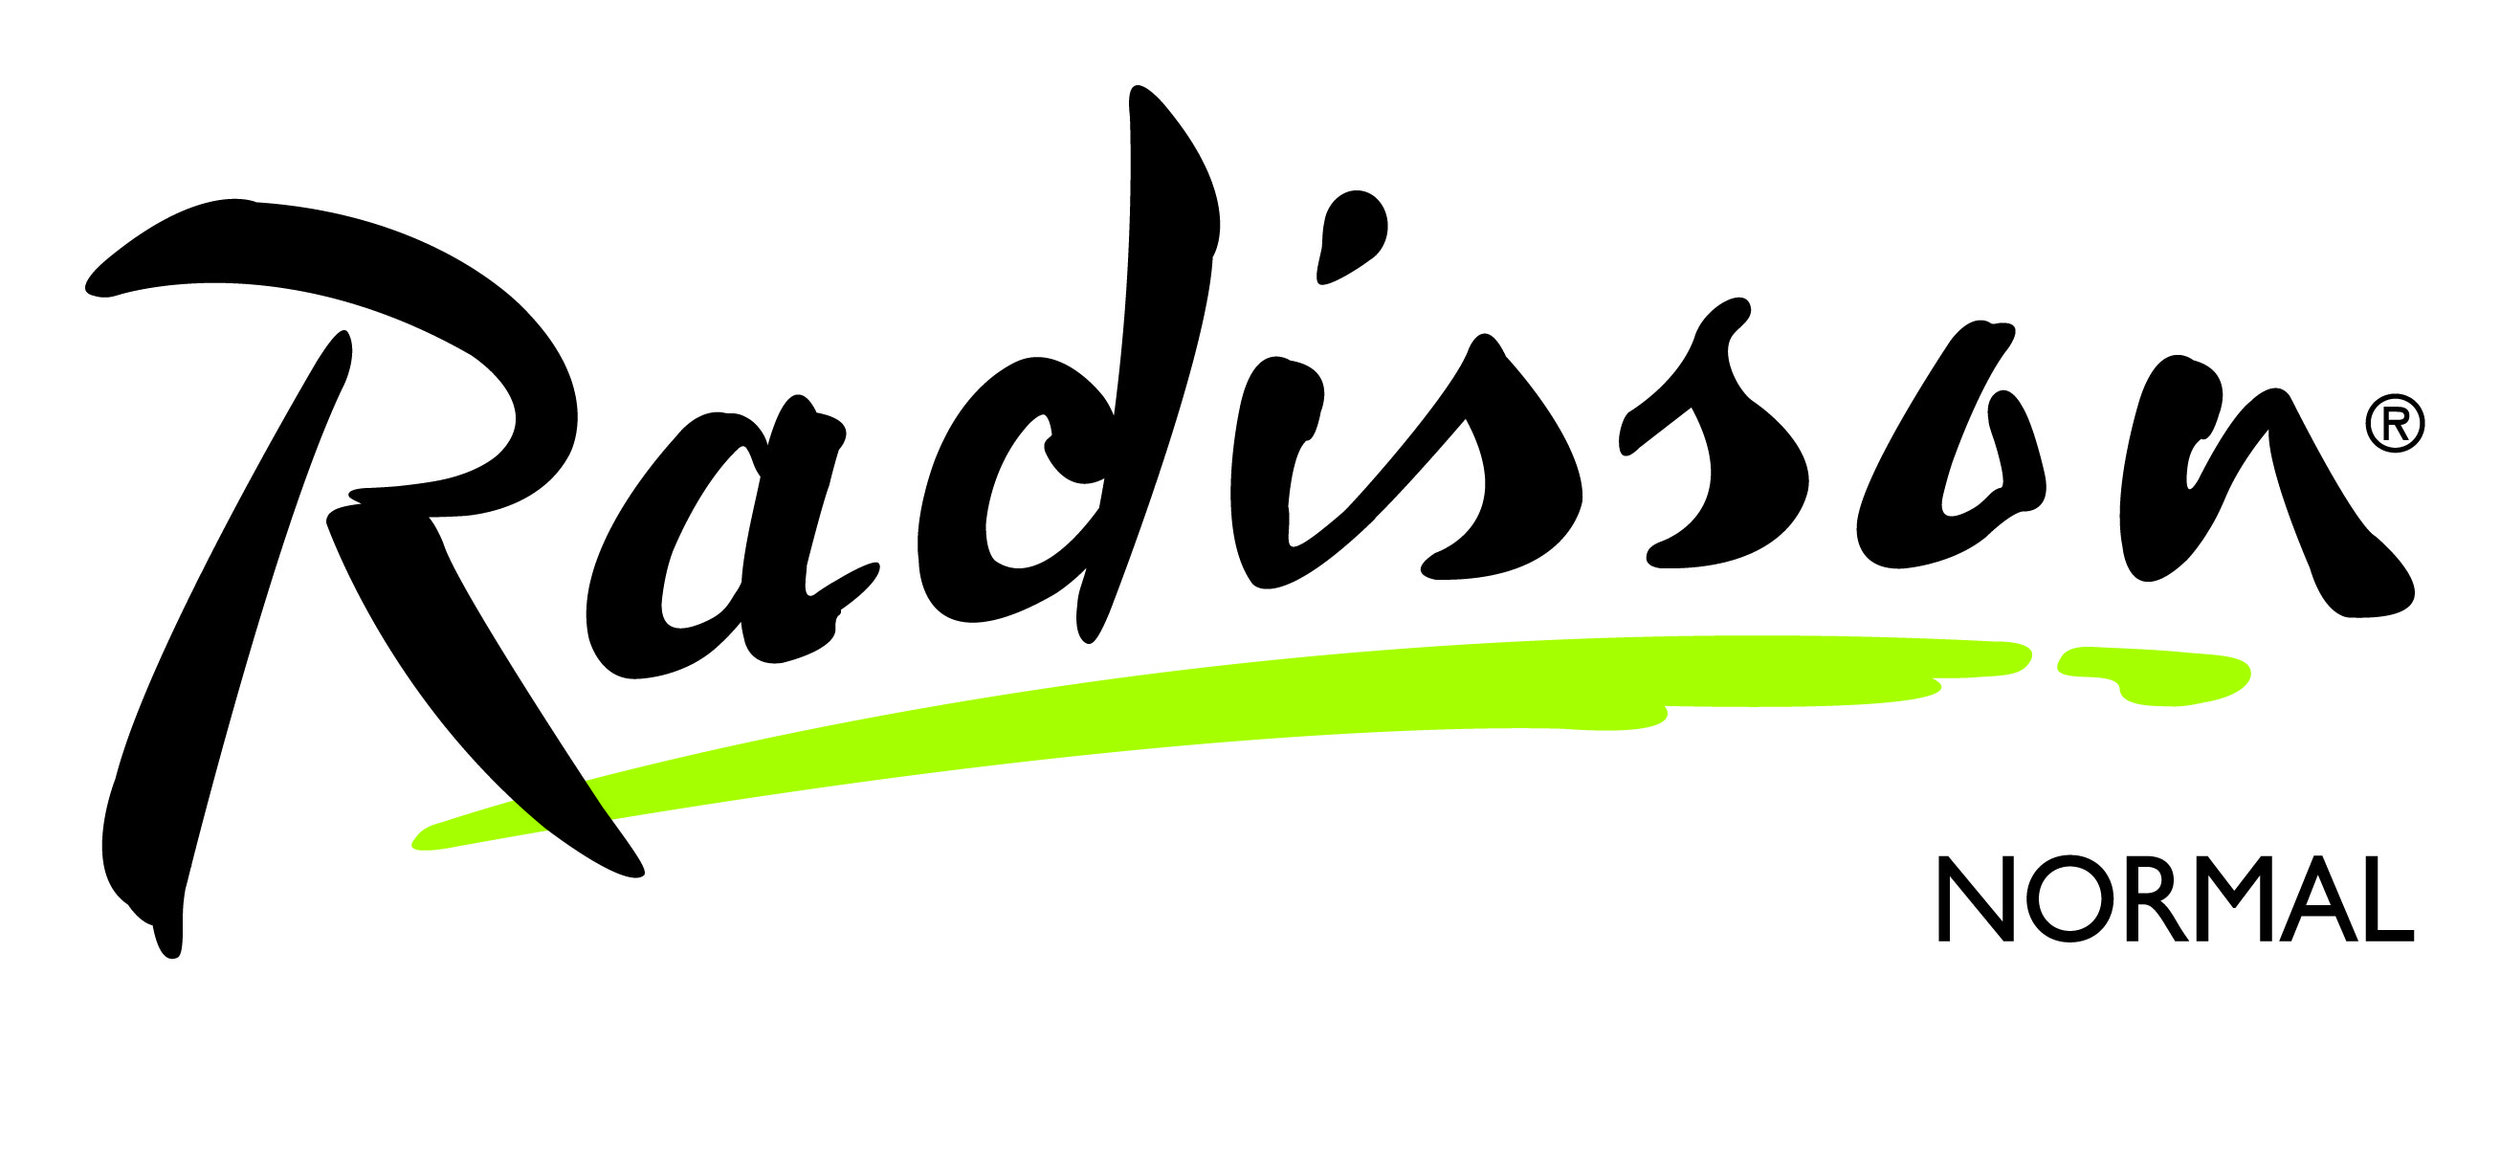 Hole Sponsor - Radisson Normal full color logo.jpg